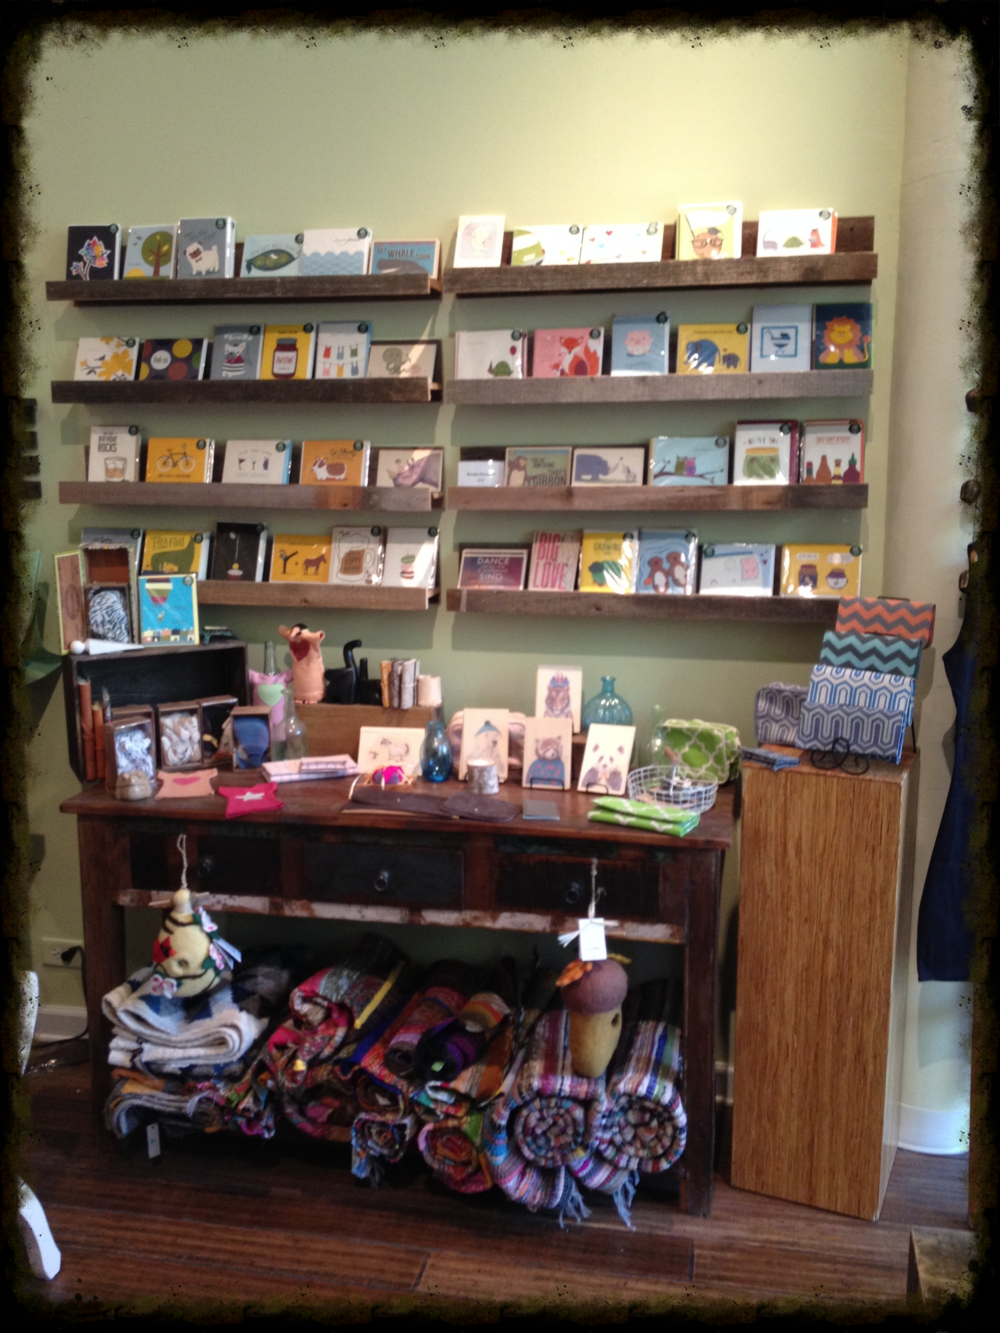 Greeting cards & blankets galore!